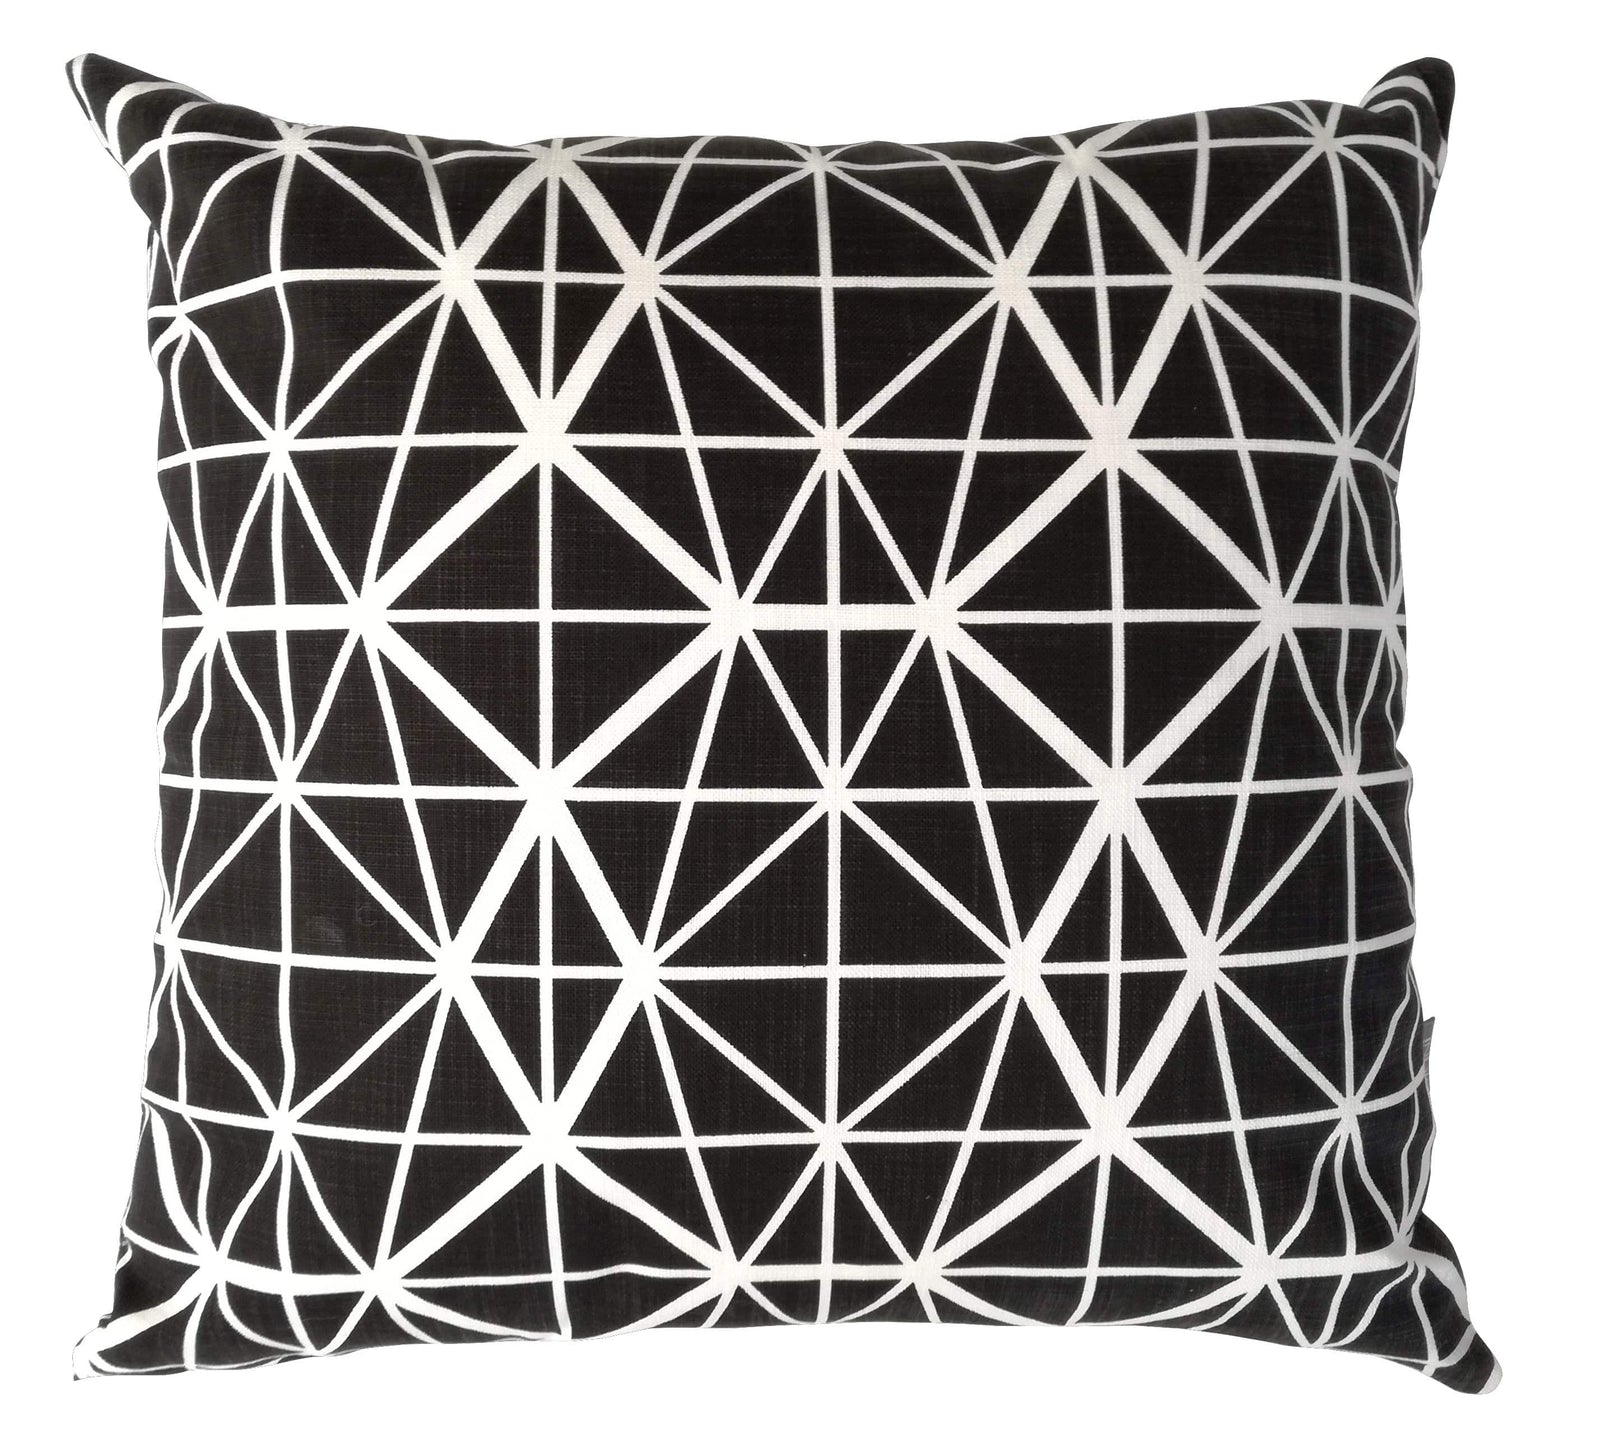 Facet Black Cushion Cover